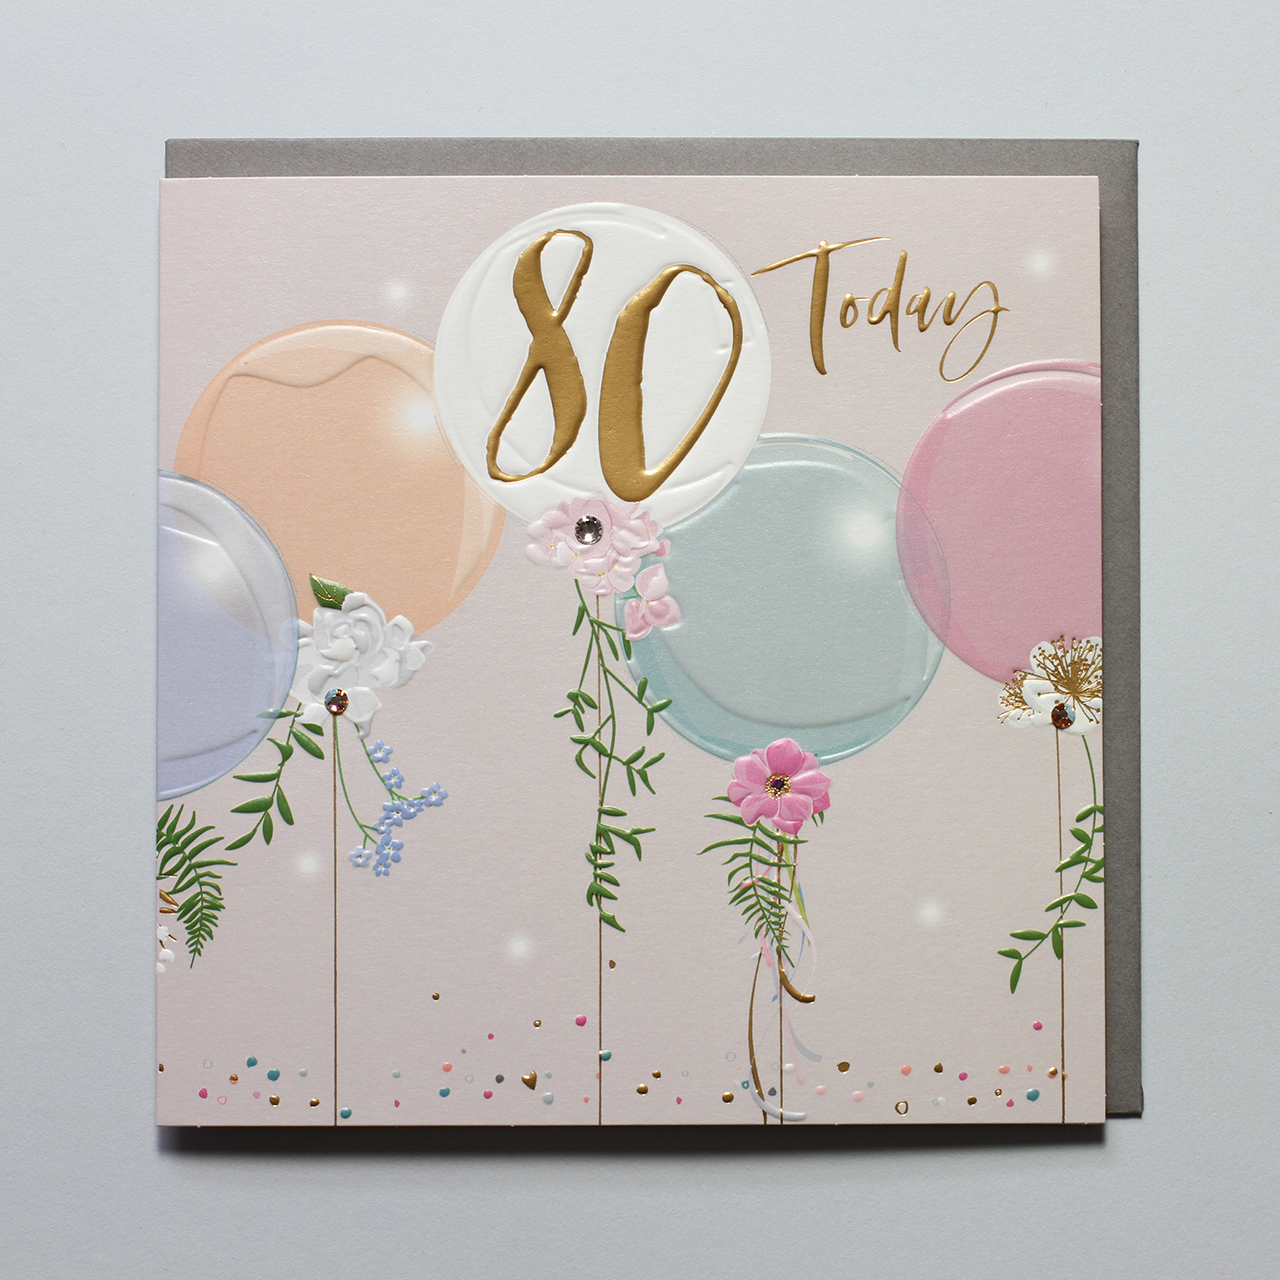 Belly Button Designs 80th Birthday Balloons